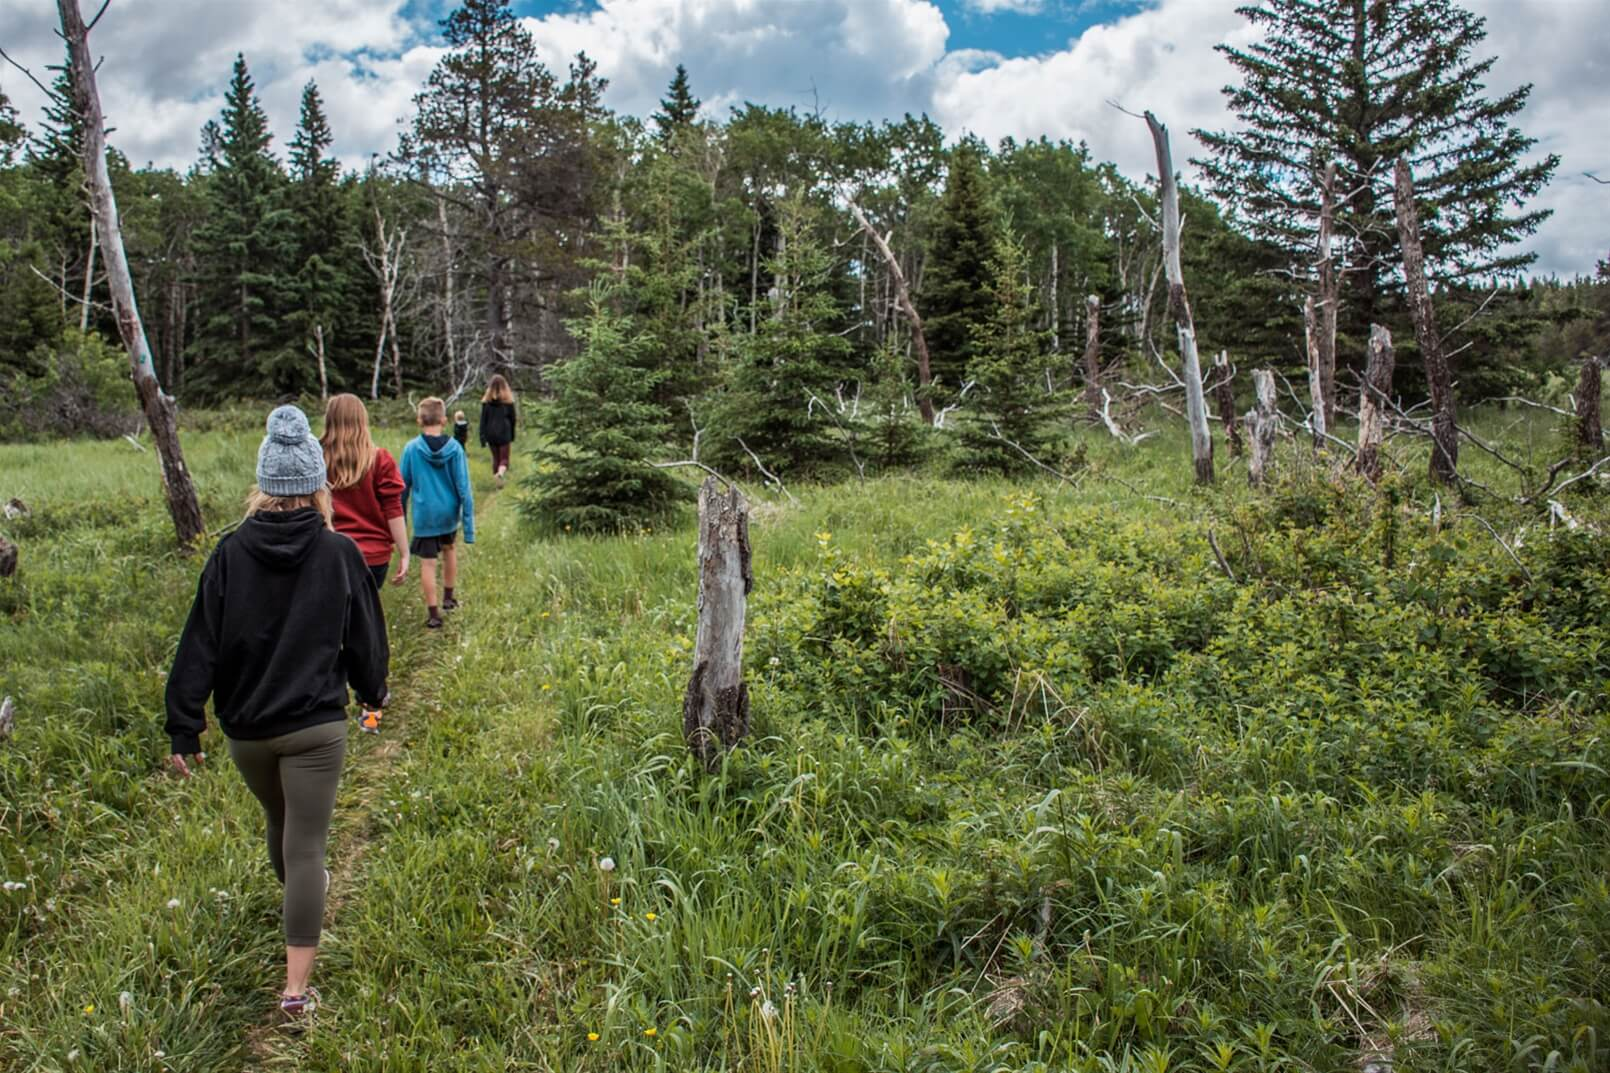 A group hikes through the trees in Cypress Hills Interprovincial Park.